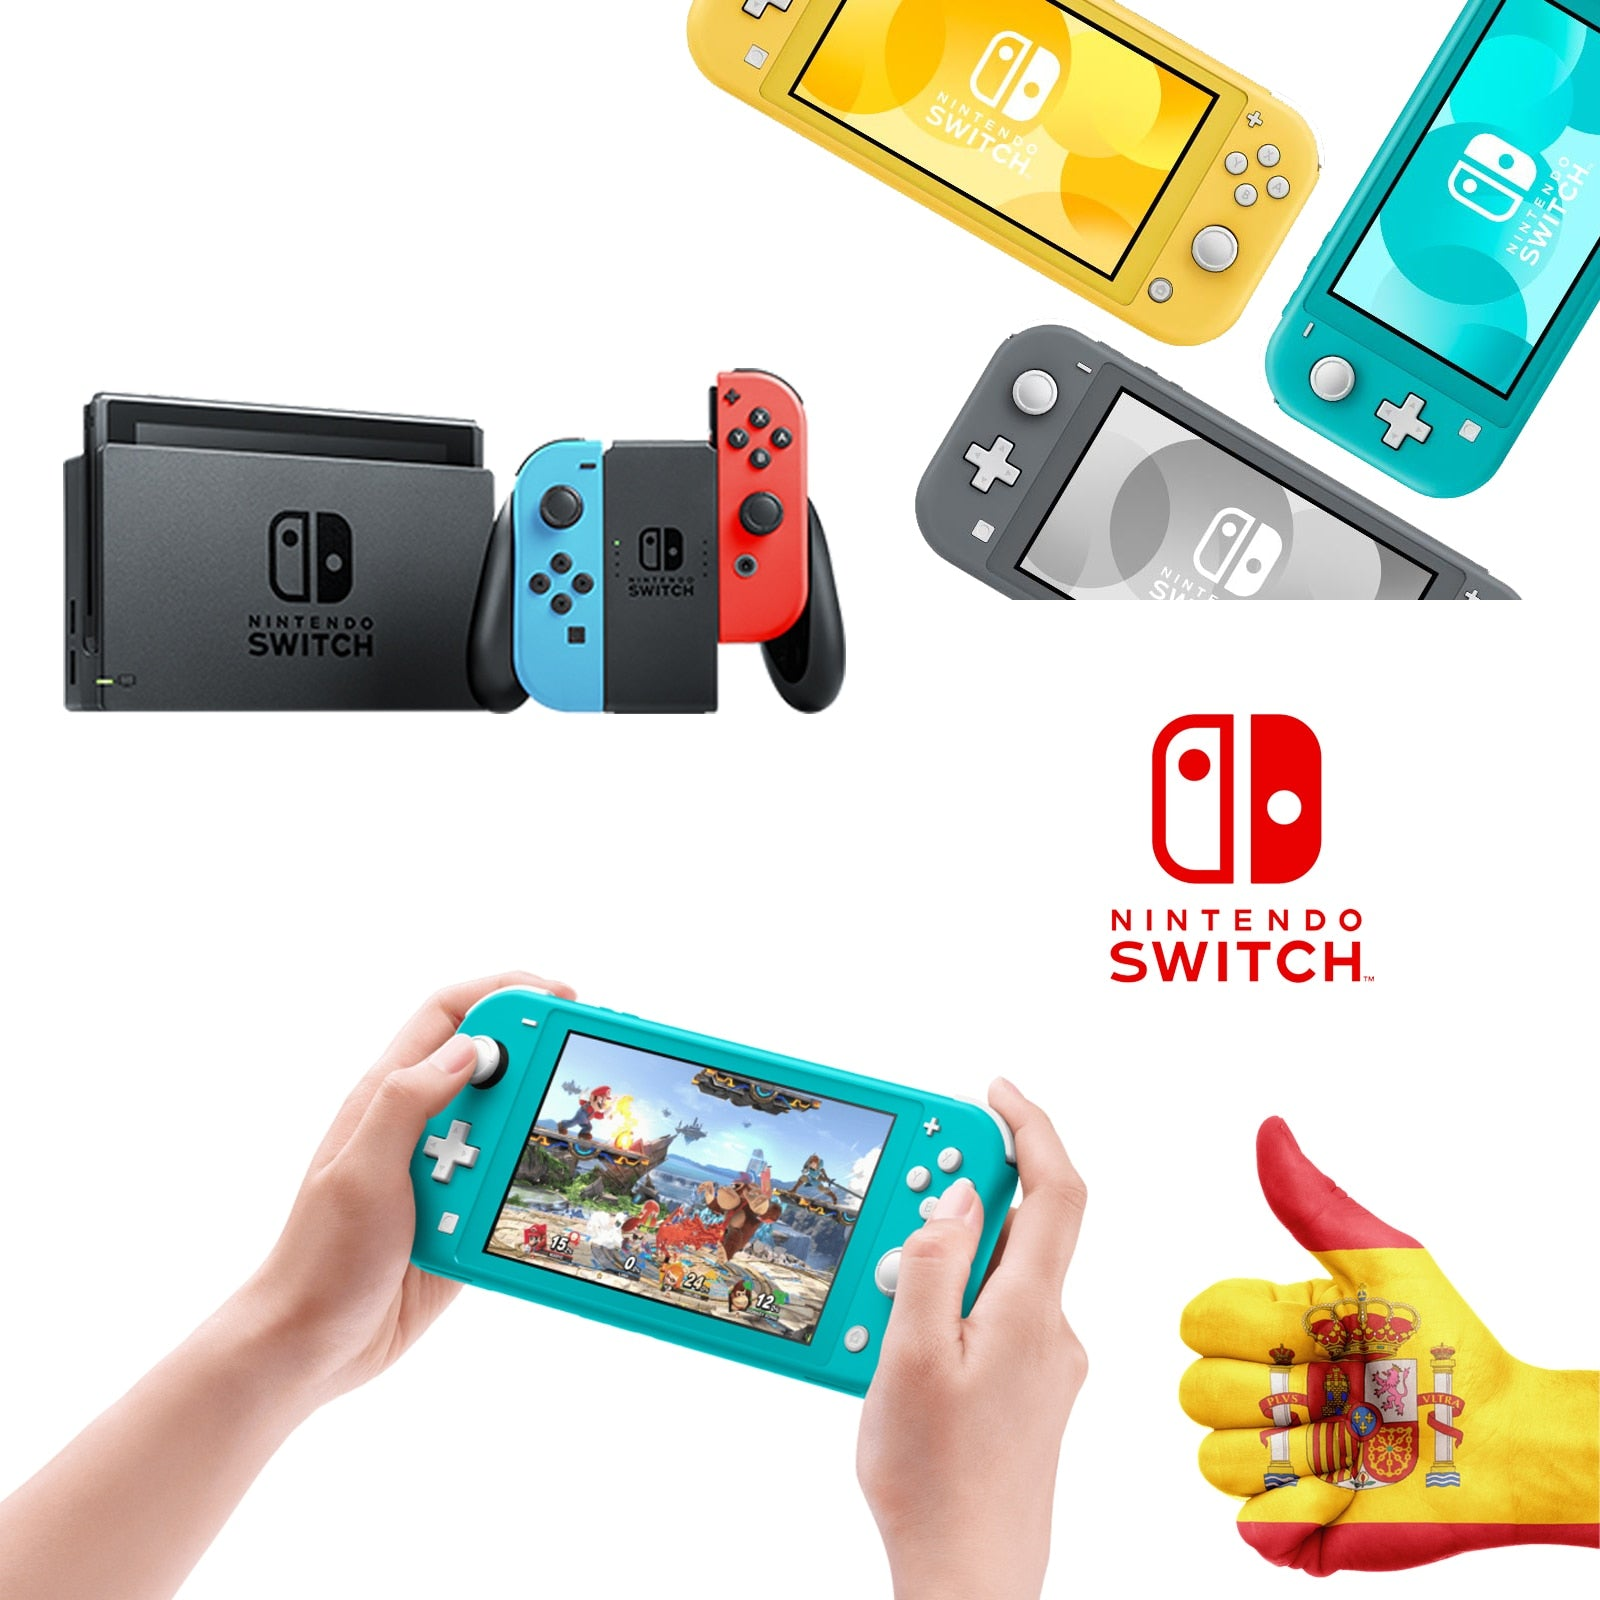 NINTENDO Switch-CONSOLE CONSOLE color blue Neon/Red Neon or LITE choose your model-NINTENDO SWITCH LITE